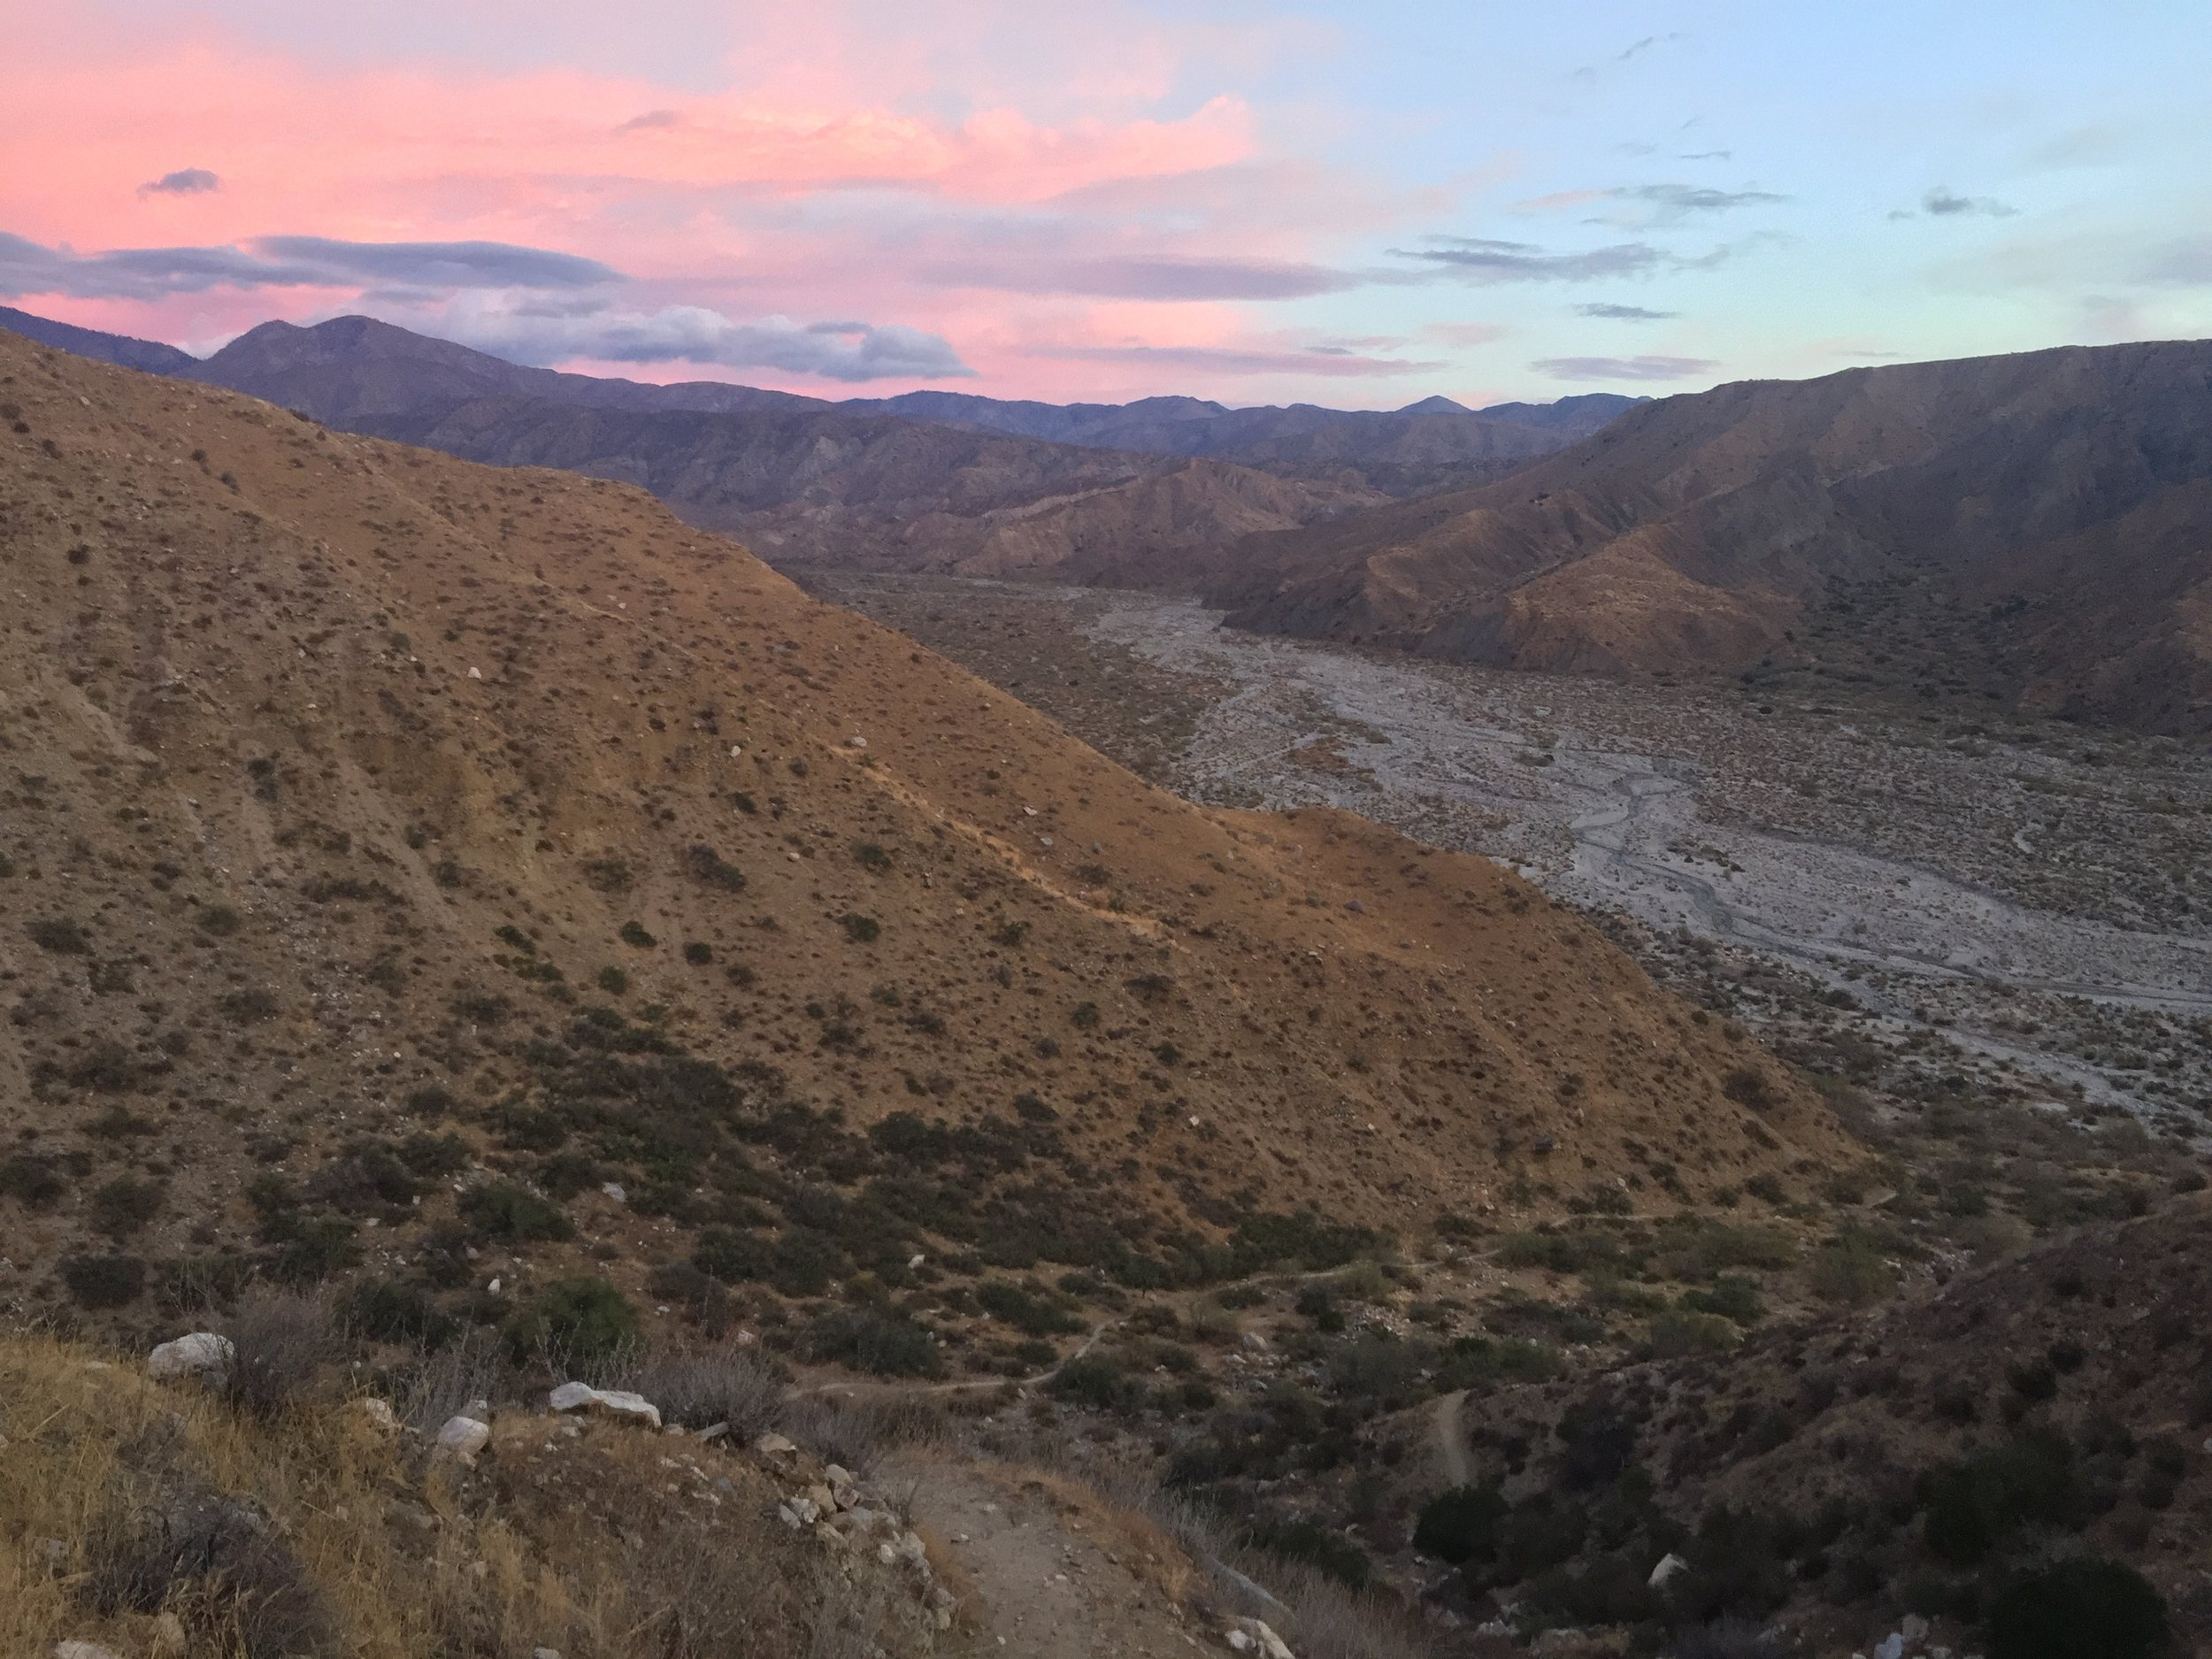 Morning glow looking north over the pale valley of the Whitewater River